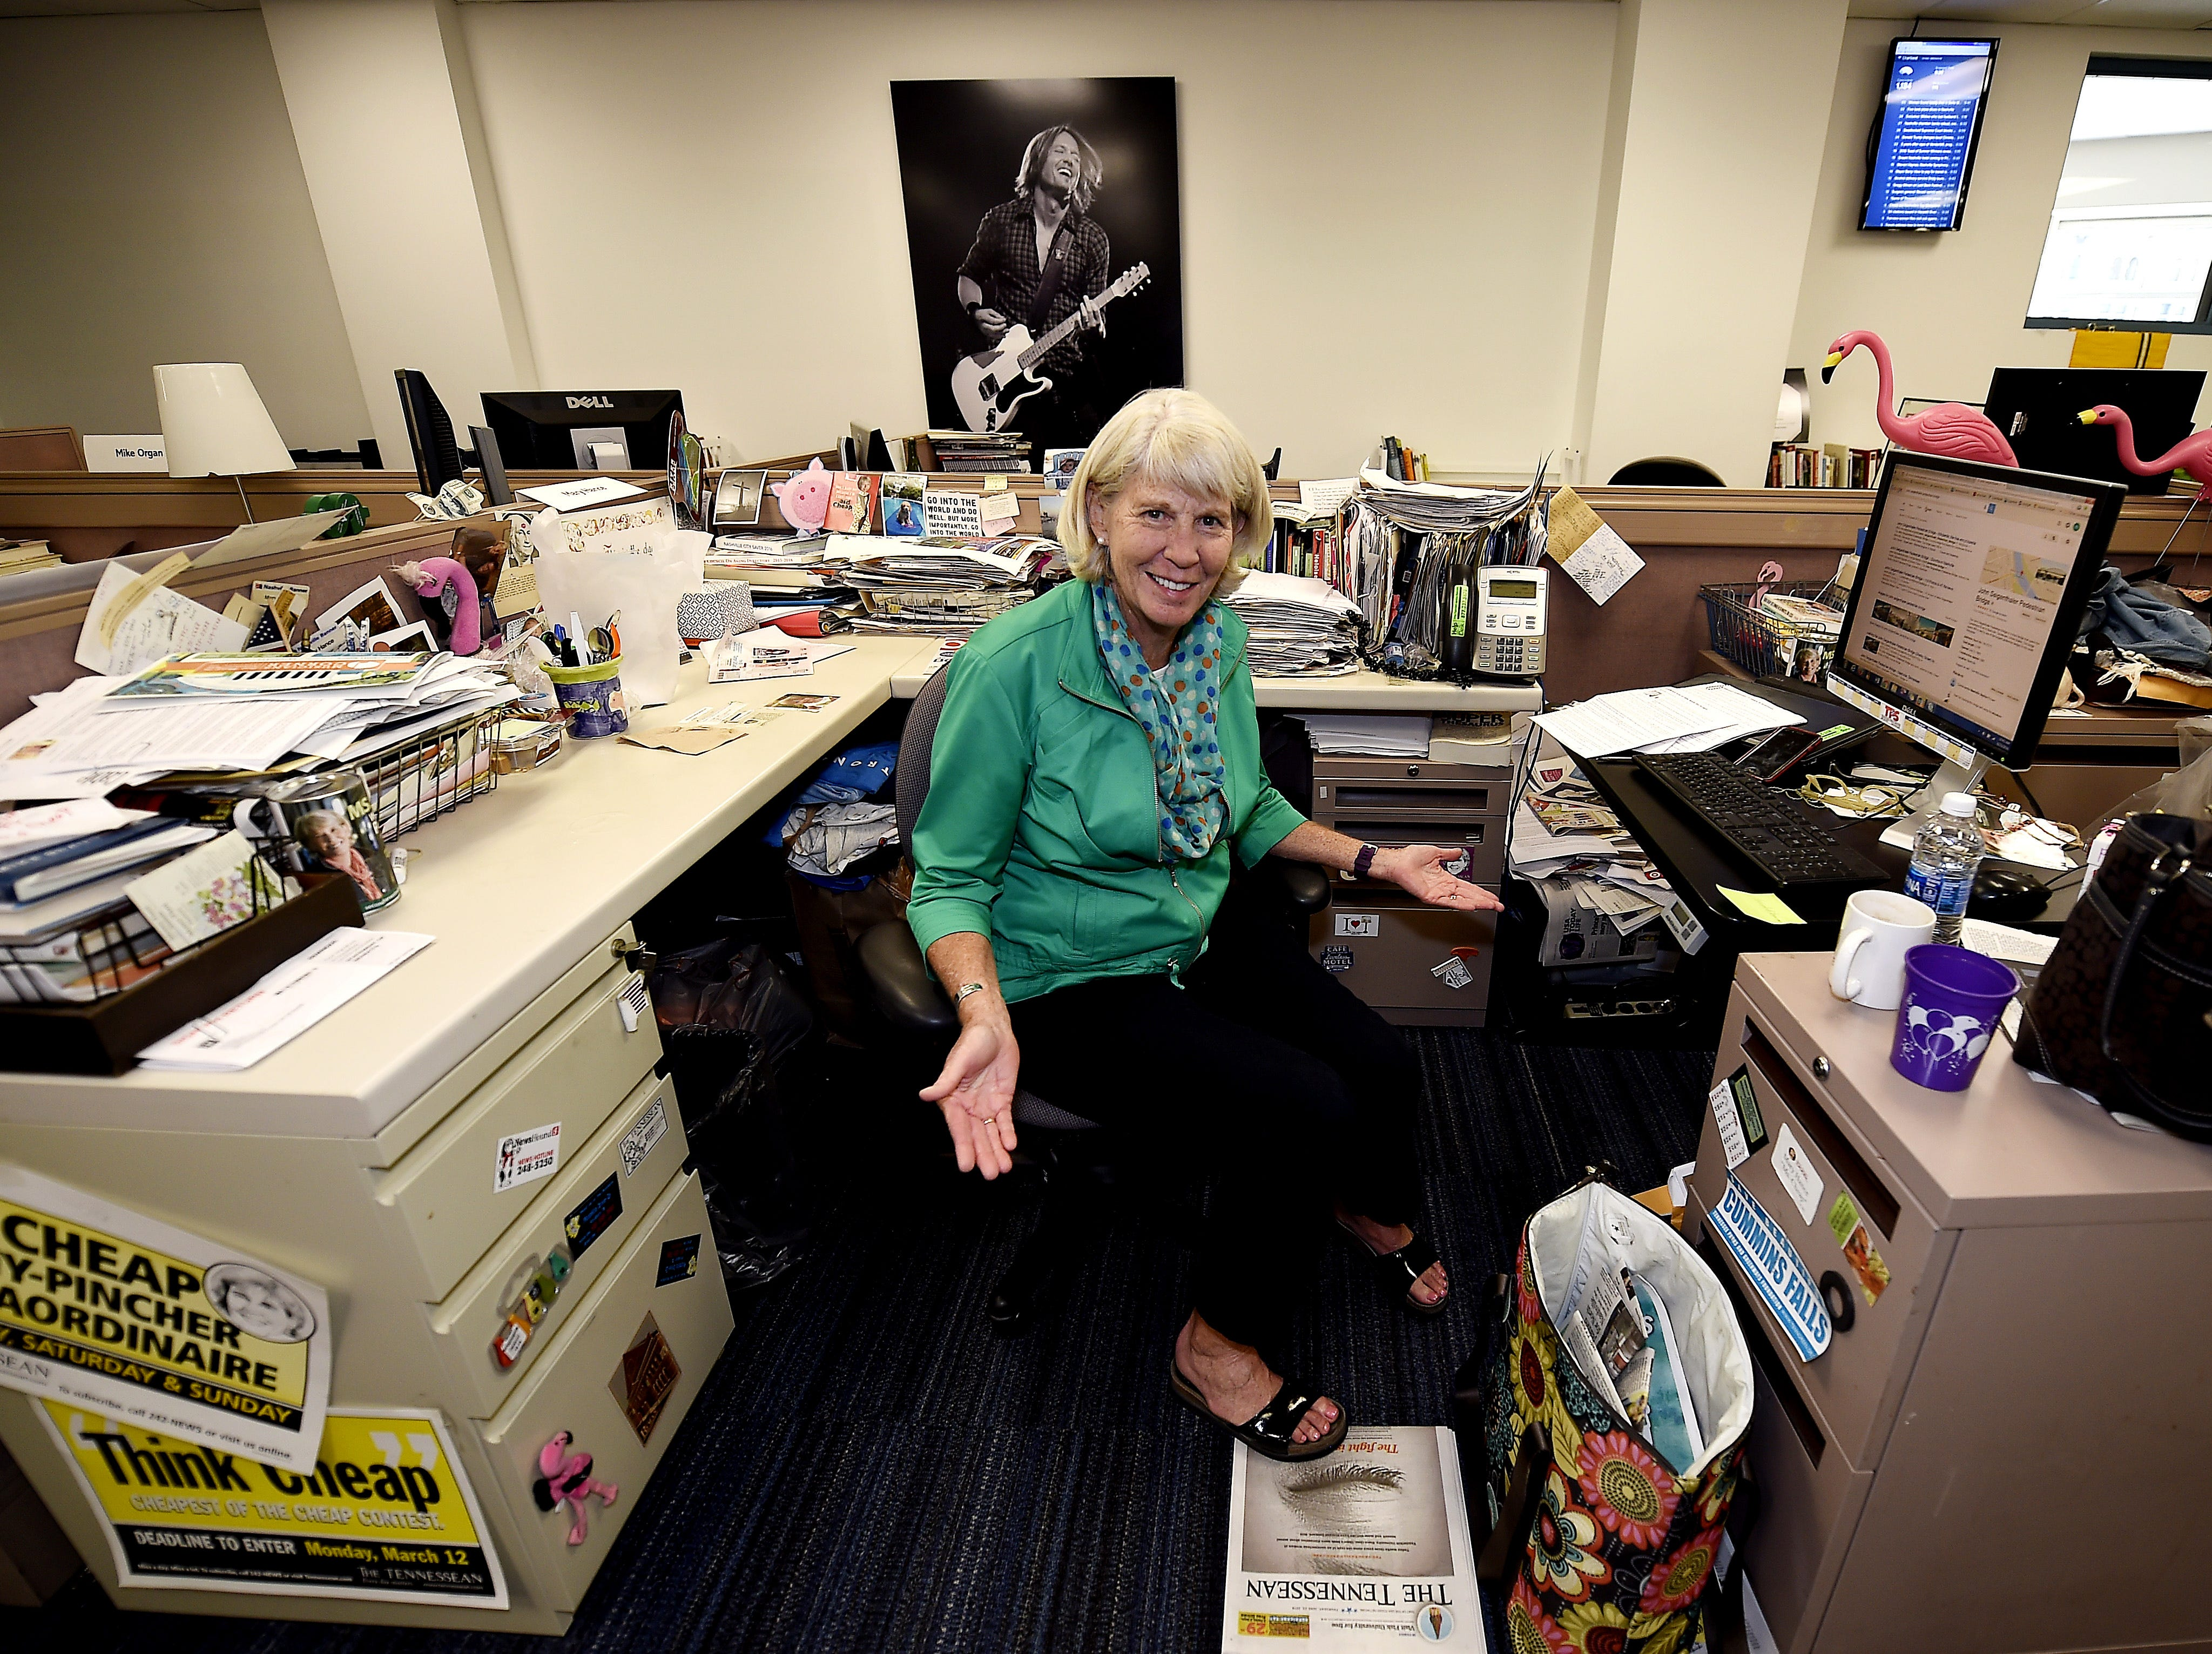 """Mary Hance's Ms. Cheap has collected lots of """"stuff"""" around her work area at The Tennessean, seen here June 23, 2016."""